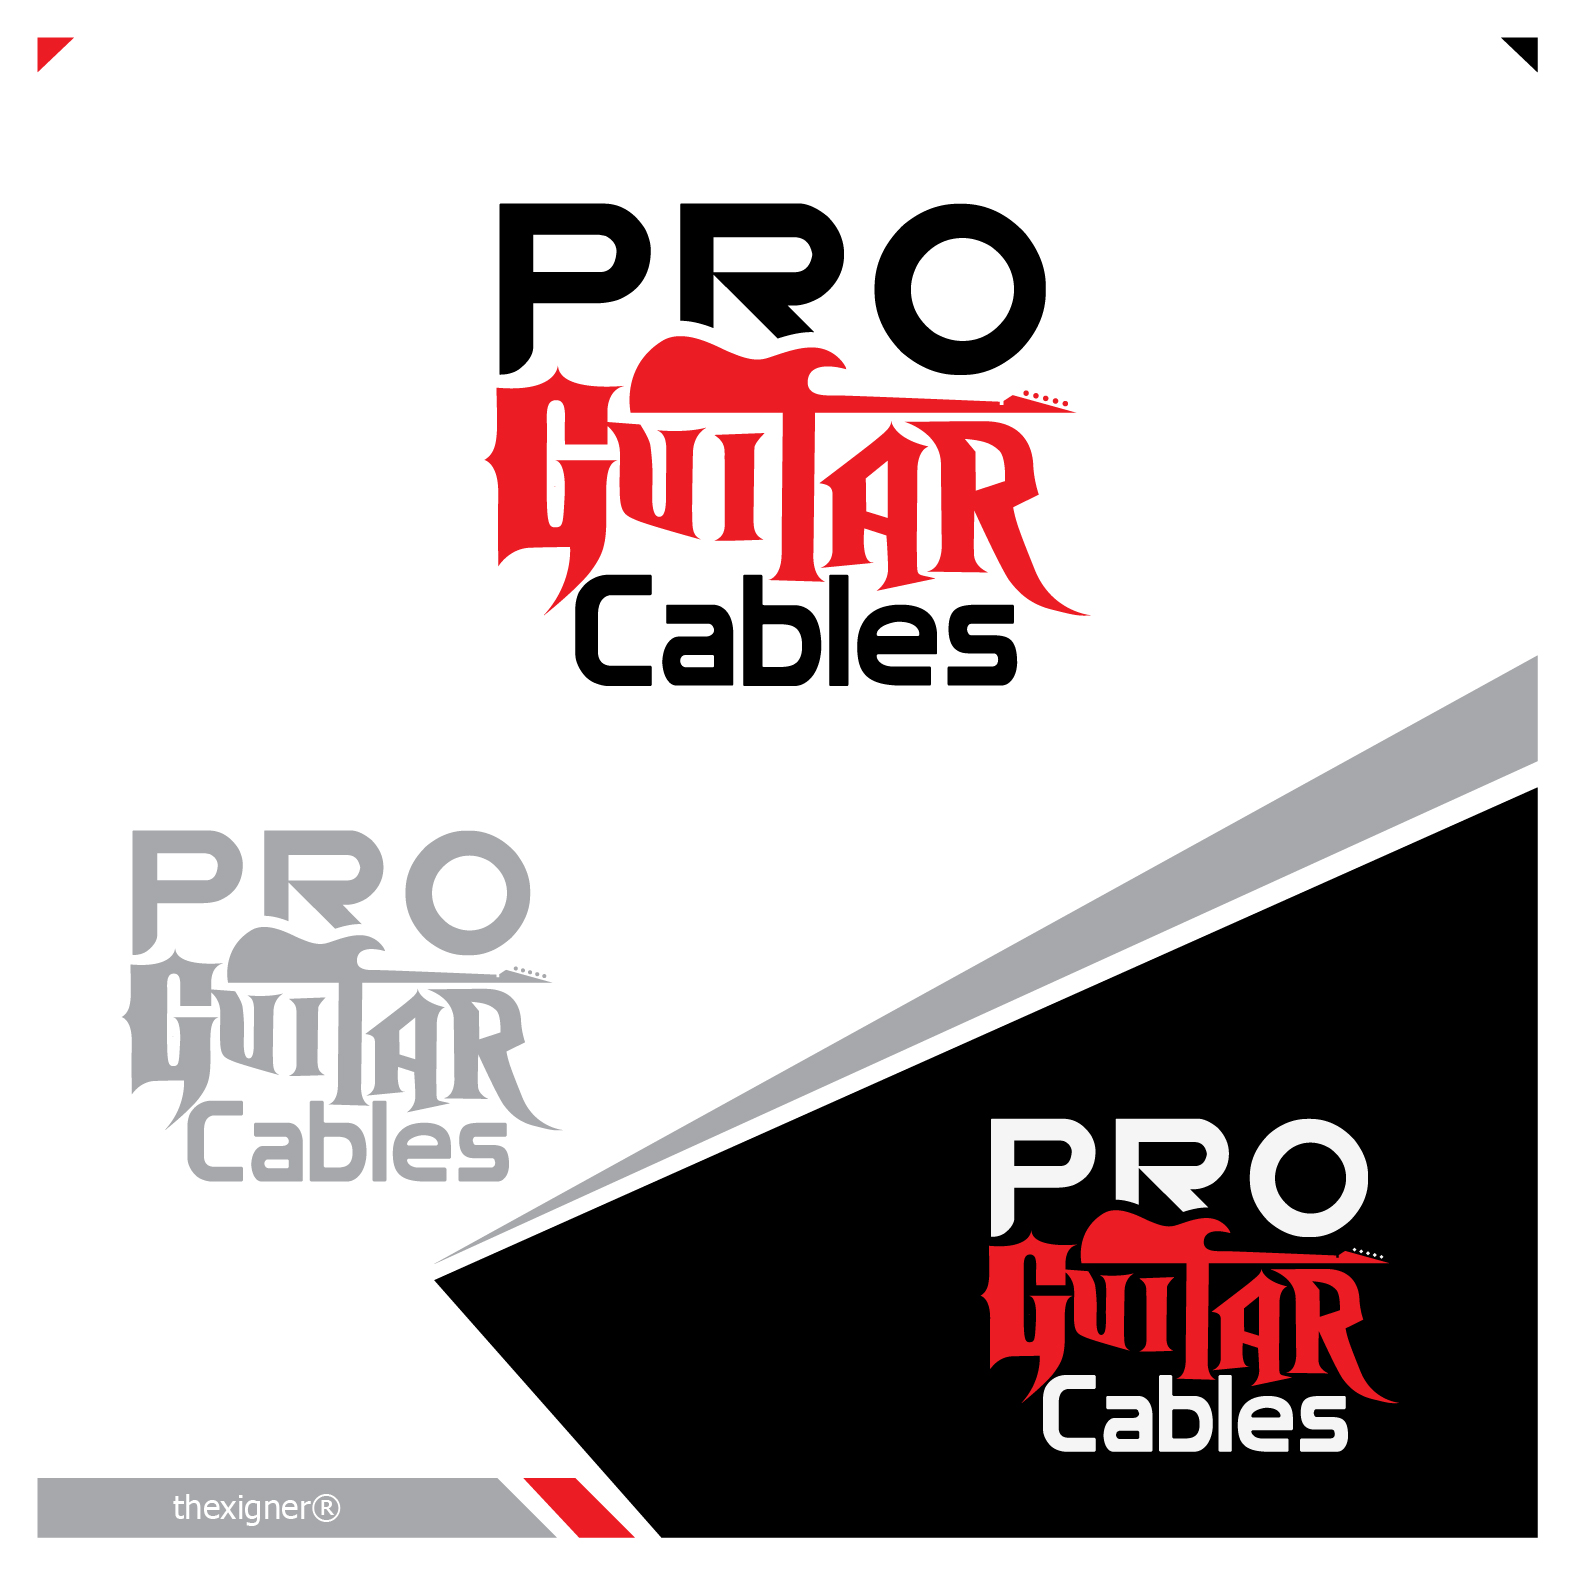 Logo Design by lagalag - Entry No. 17 in the Logo Design Contest Pro Guitar Cables Logo Design.